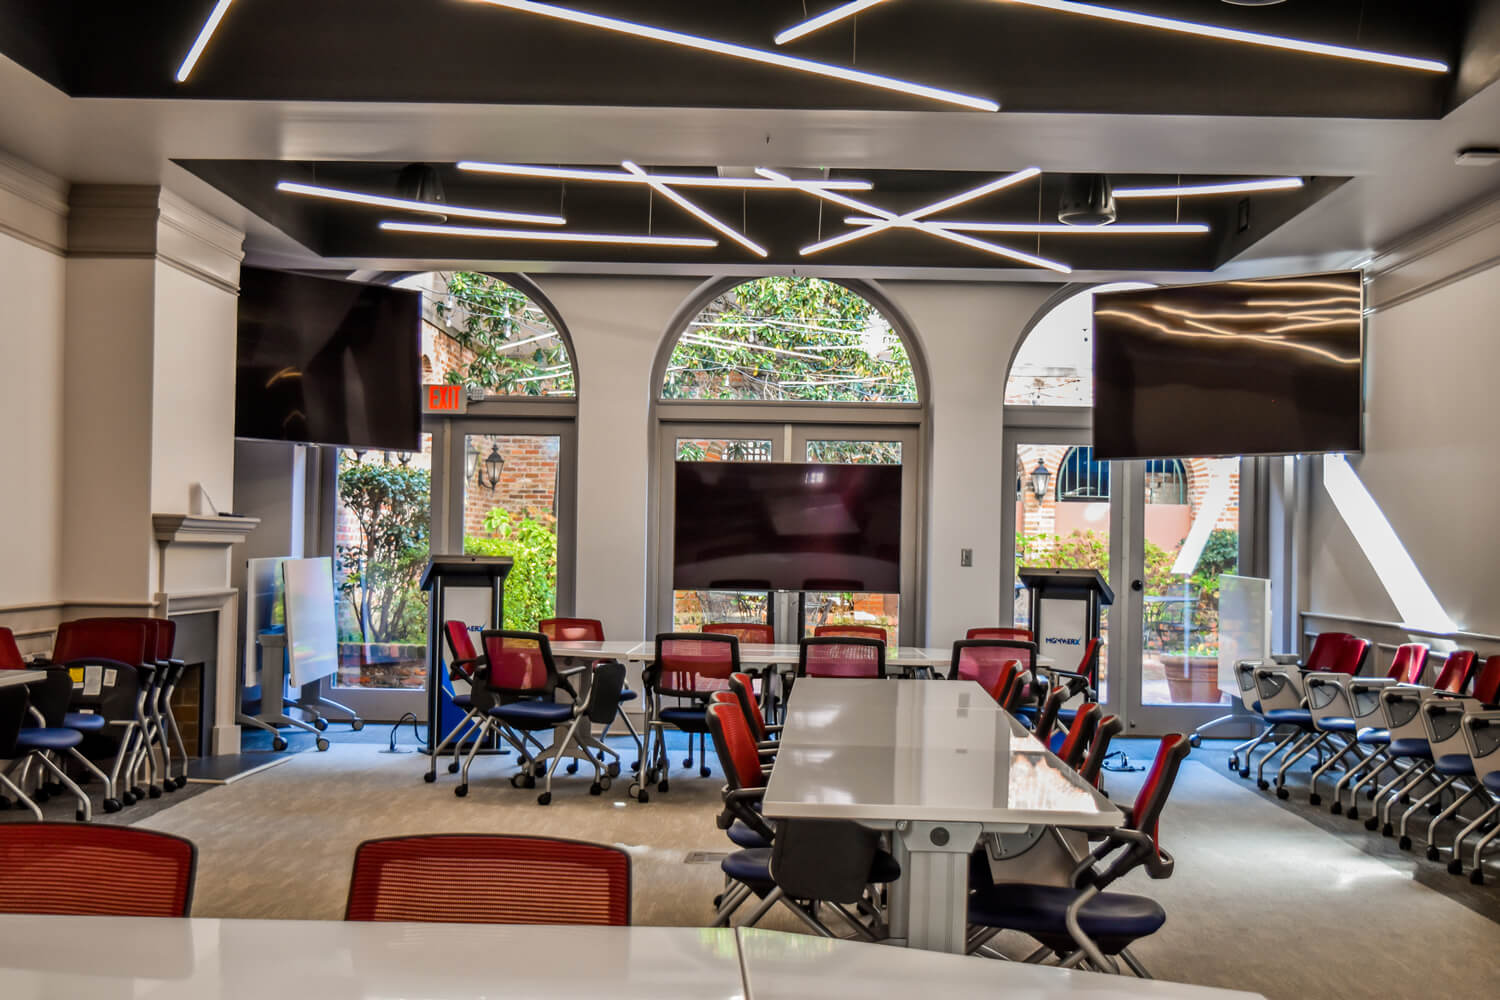 MGMWerx Collaboration Space - Meeting Room - Designed by Foshee Architecture